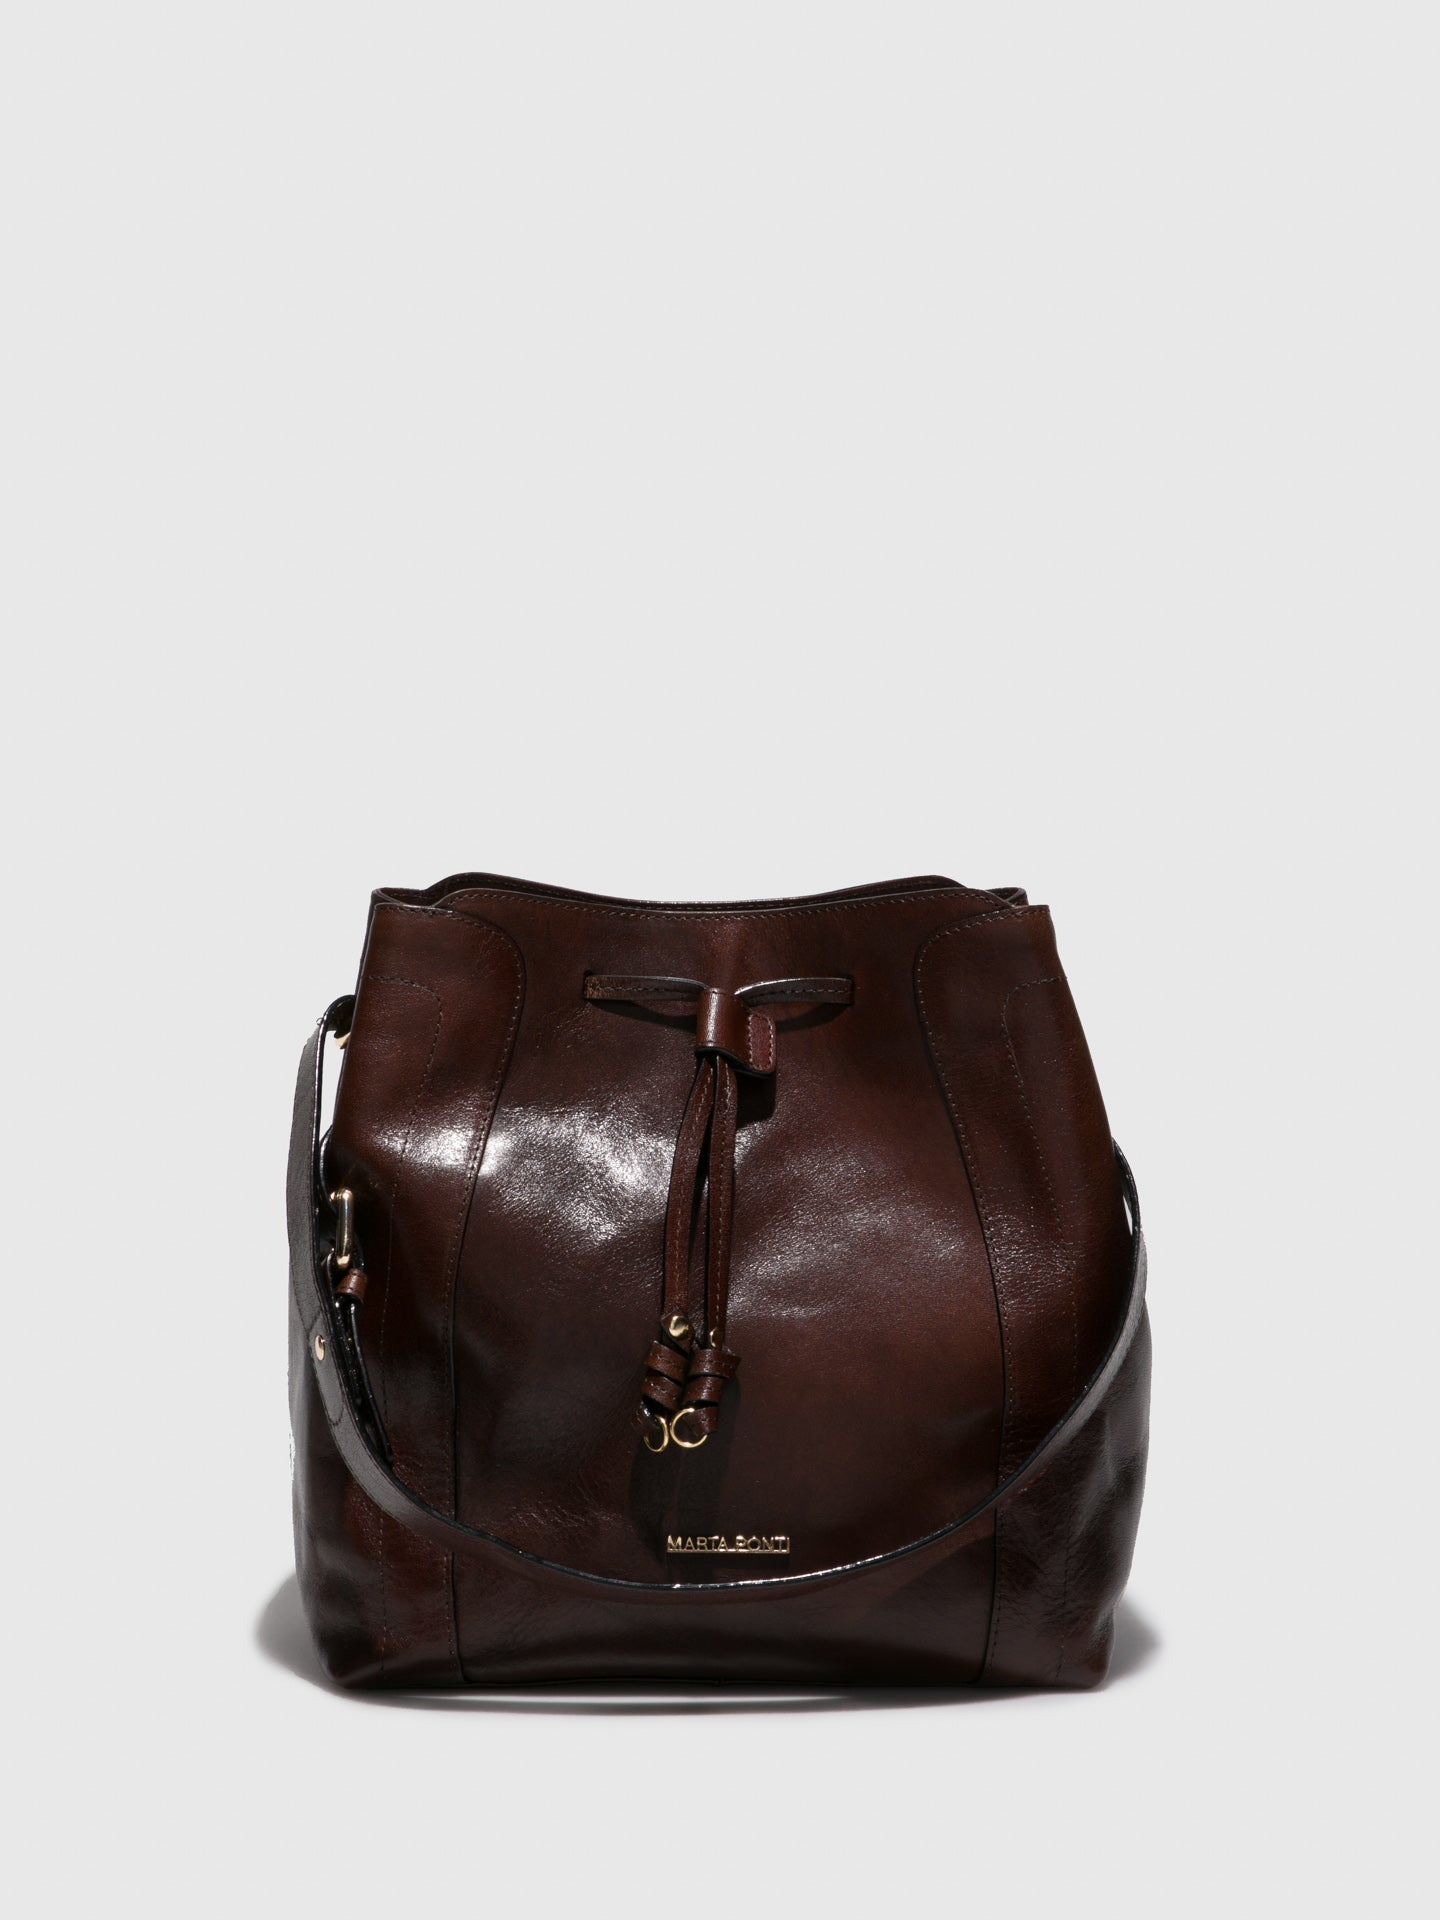 MARTA PONTI Chocolate Shoulder Bag